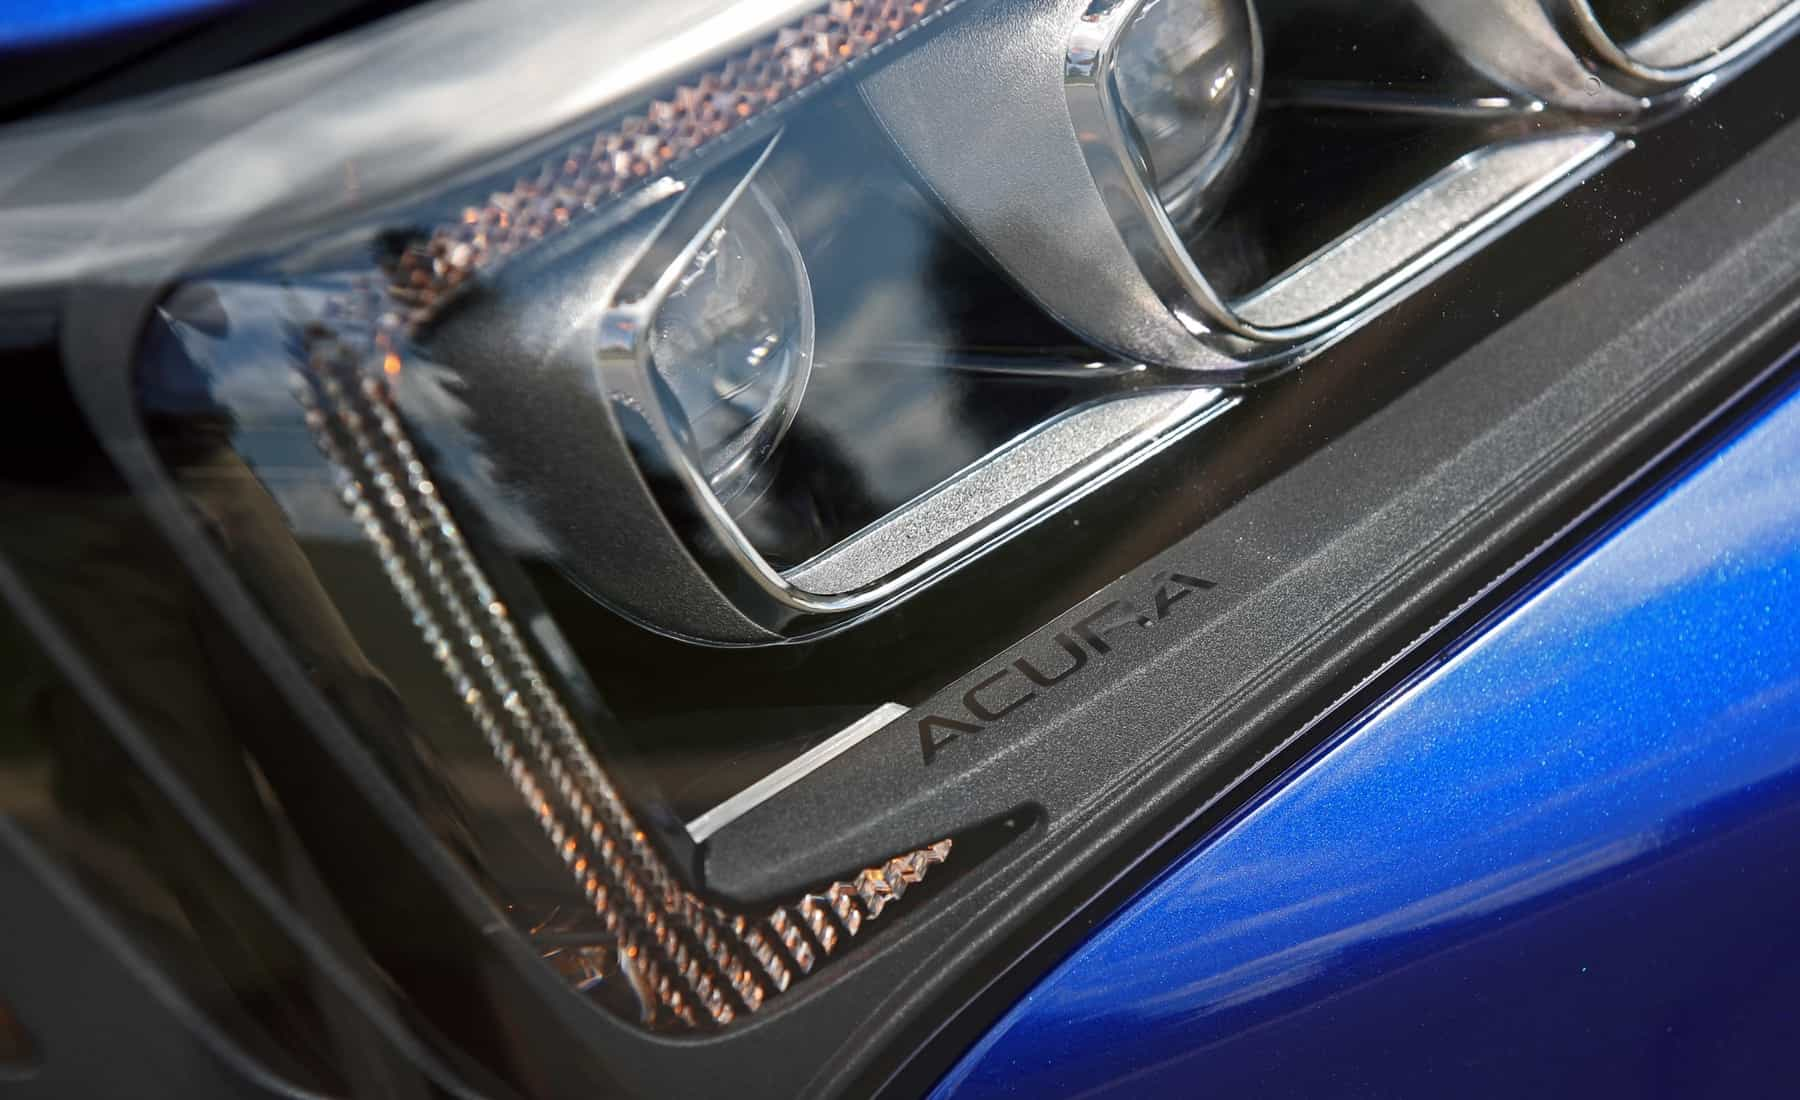 2018 Acura TLX Exterior View Headlight Projector (Photo 39 of 46)